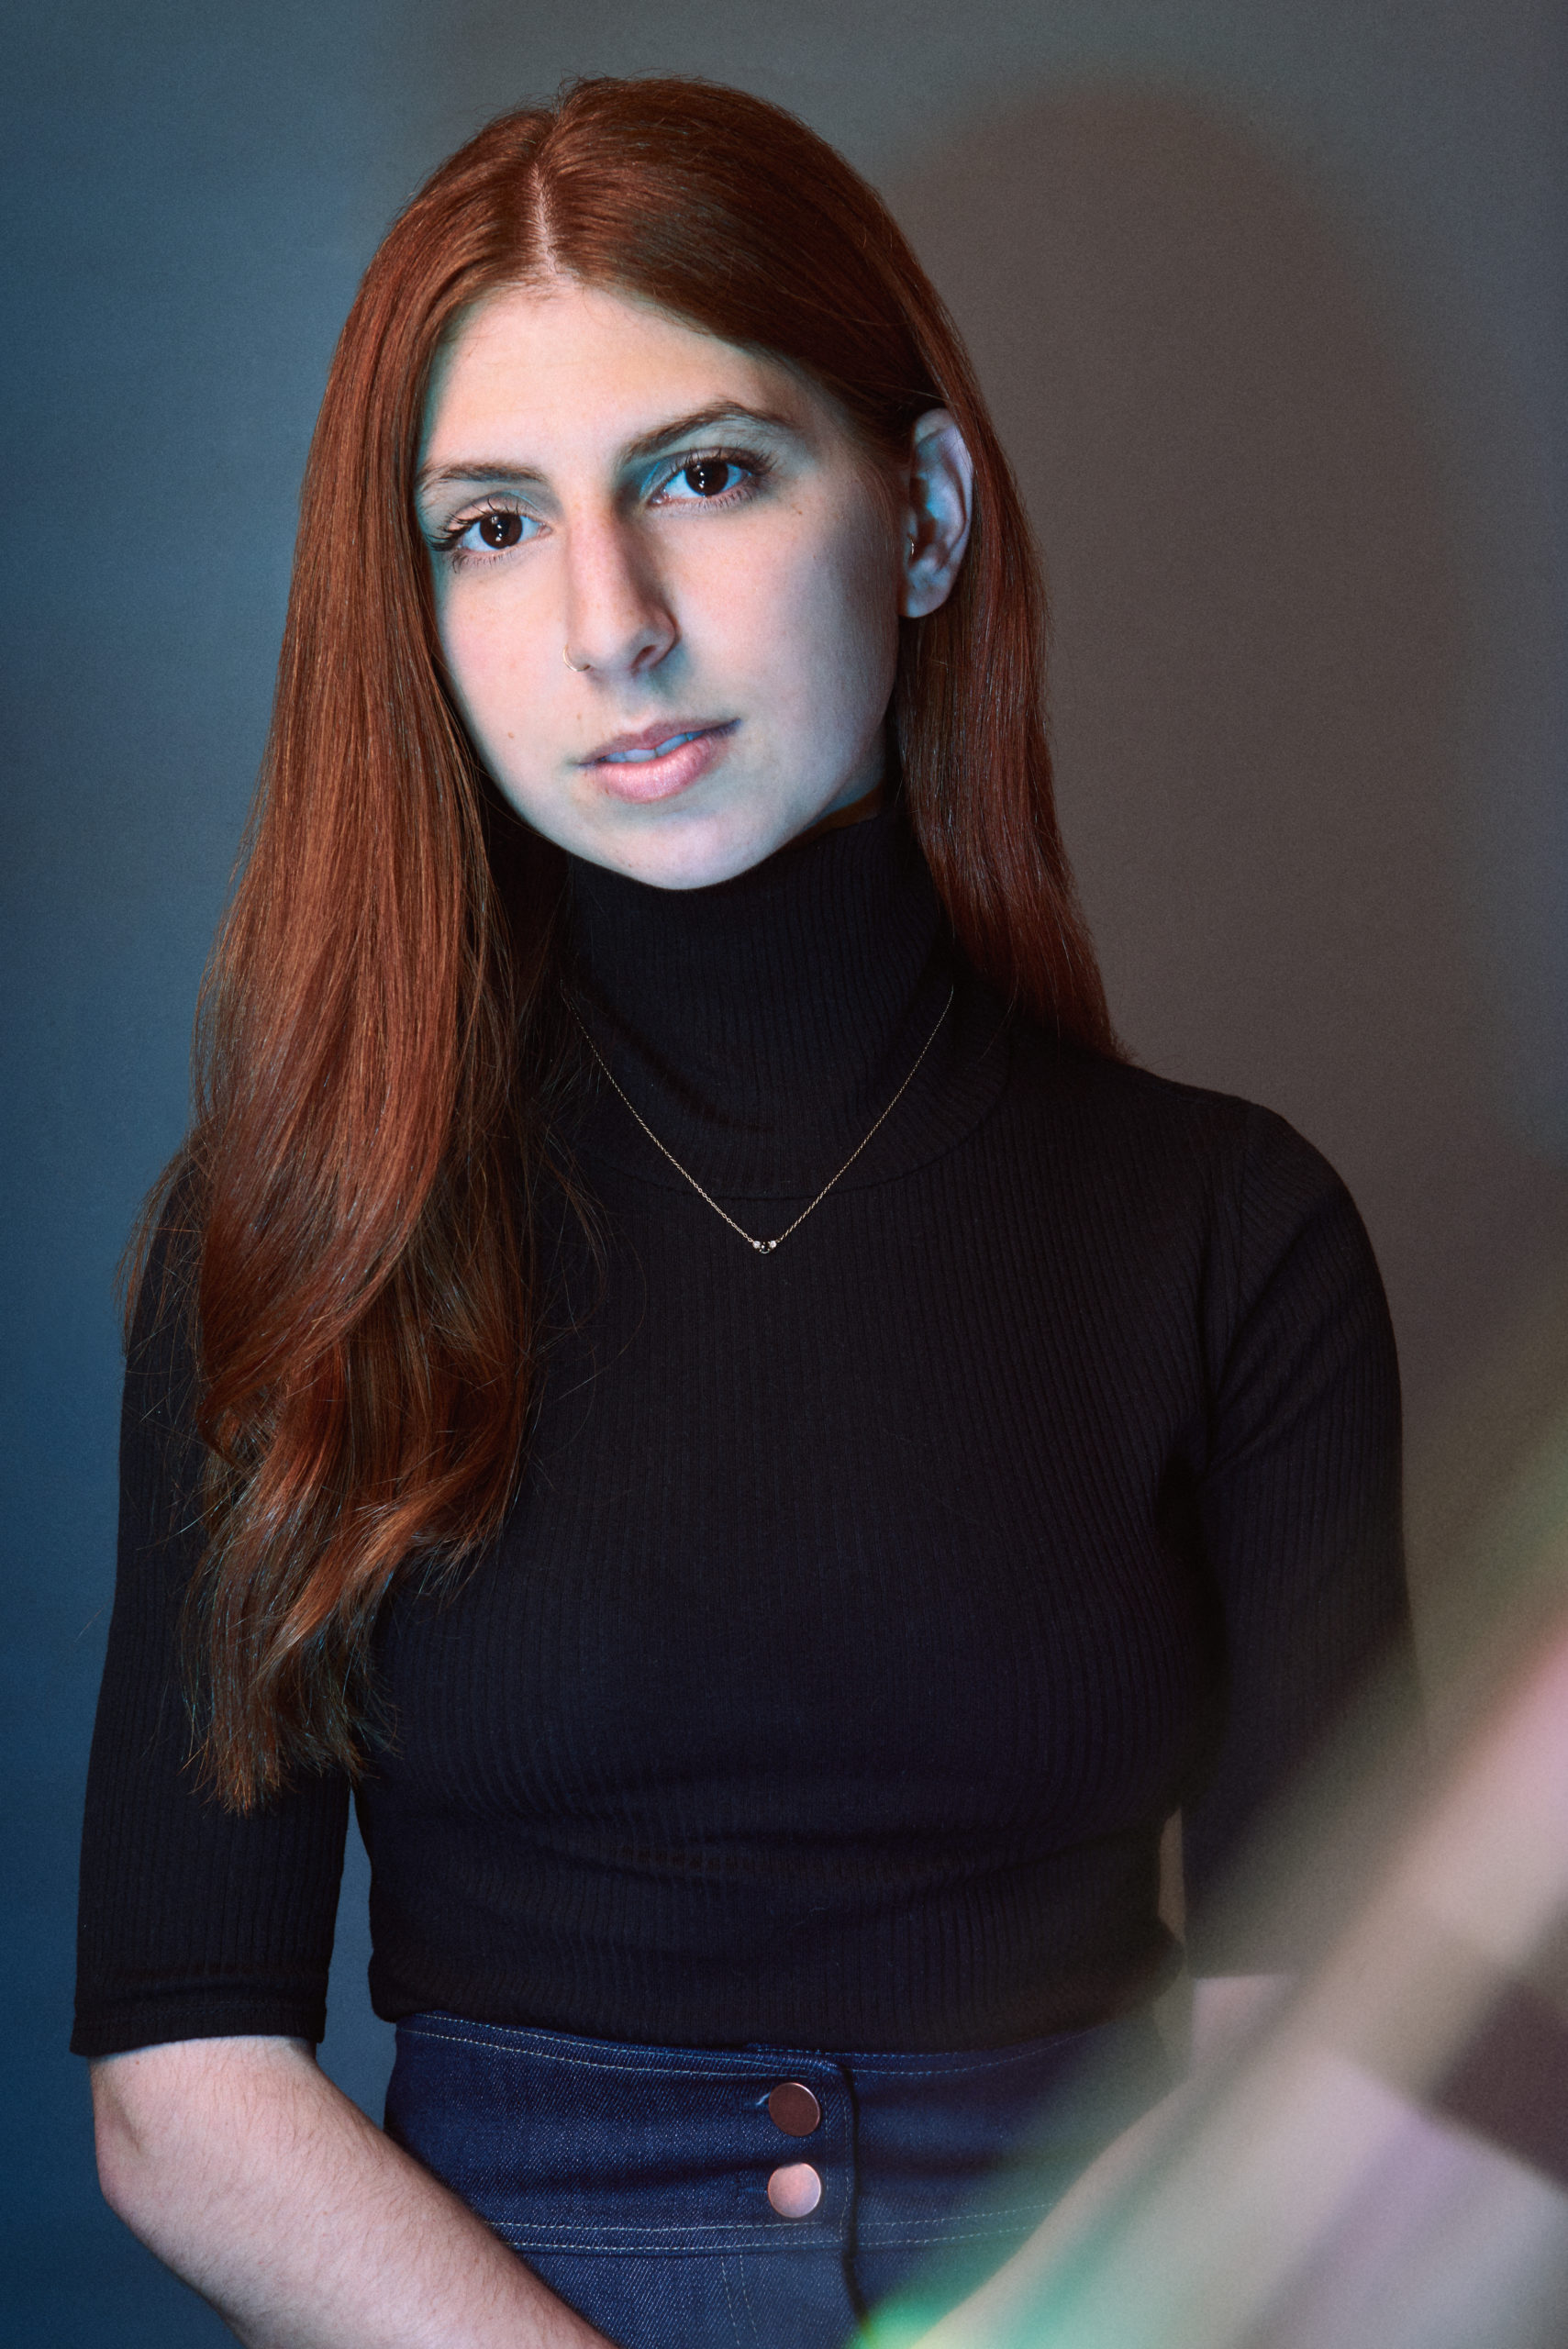 fair skin woman with long red hair in a black turtleneck